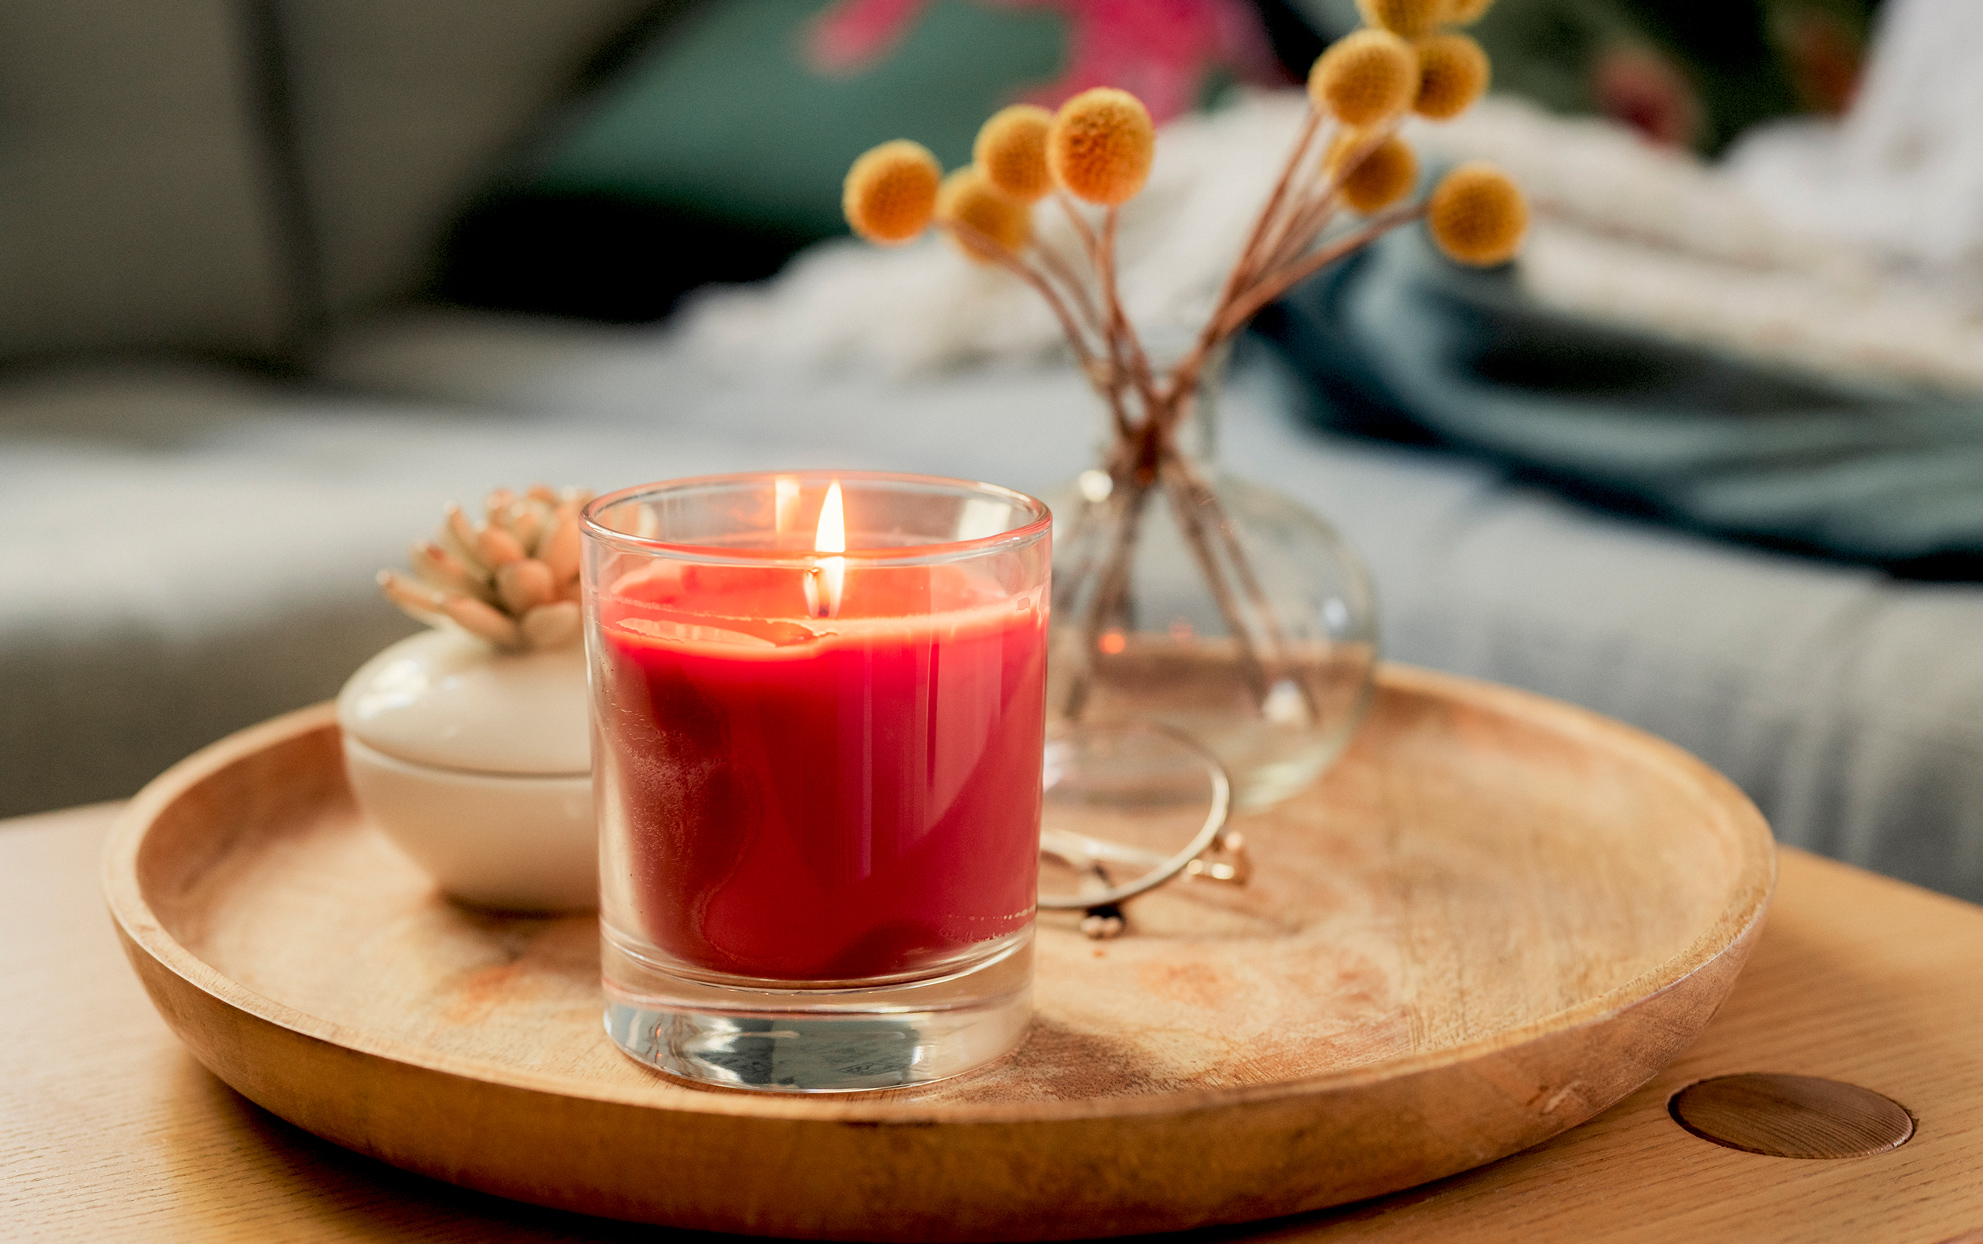 Candle flowers and decorative items on a wooden tray